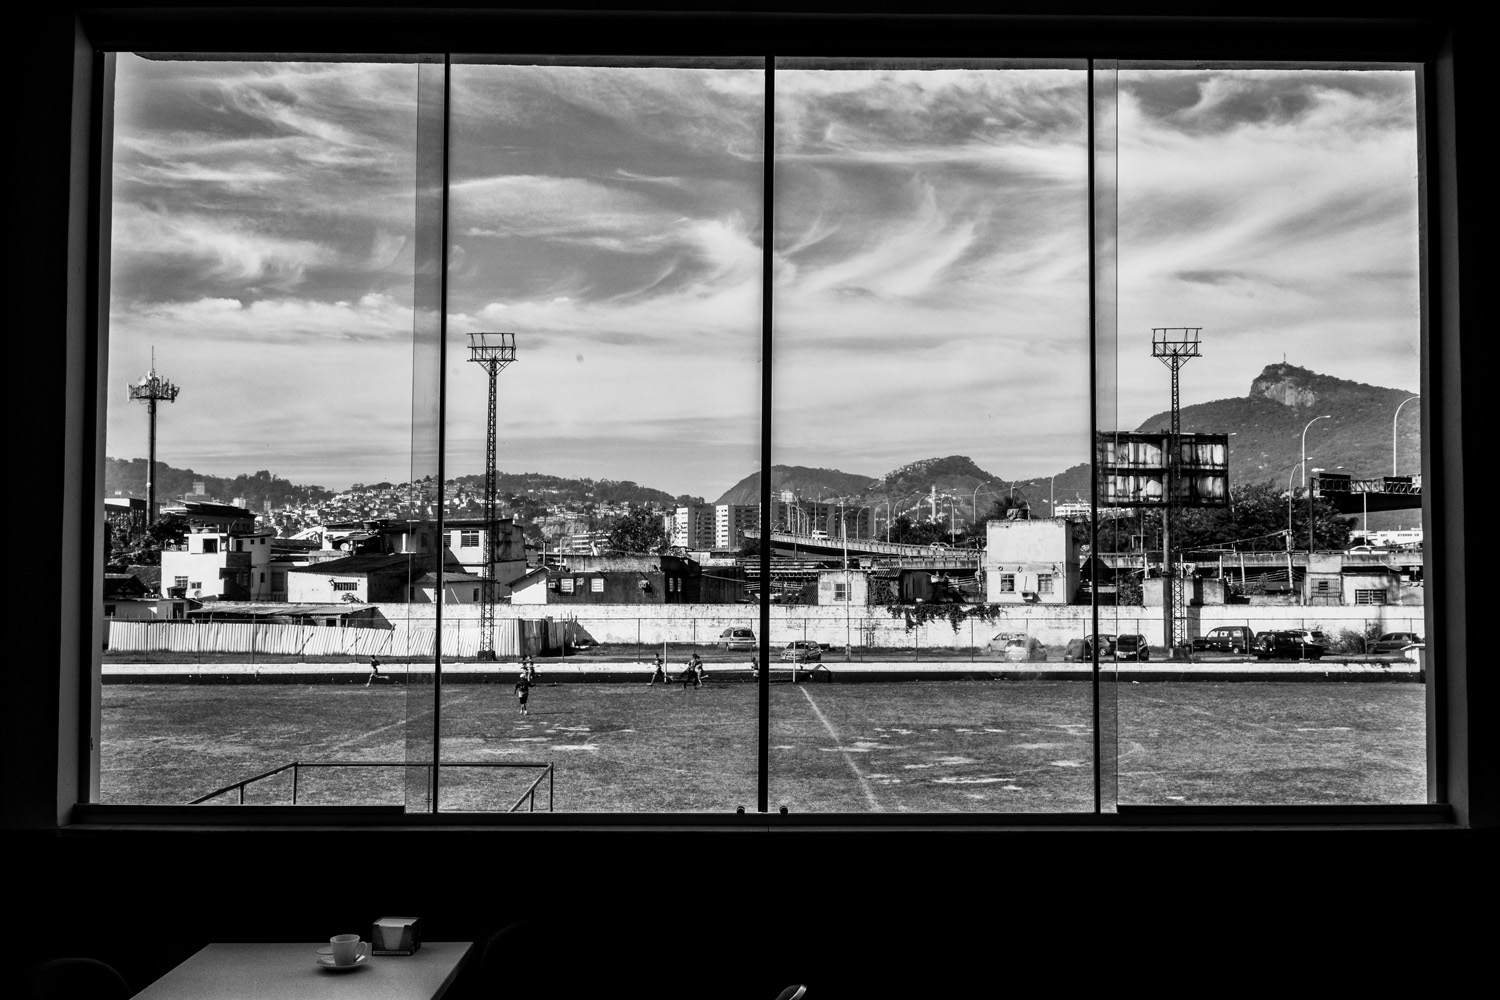 A view of the Sao Cristovao soccer team stadium view from the club president's office.